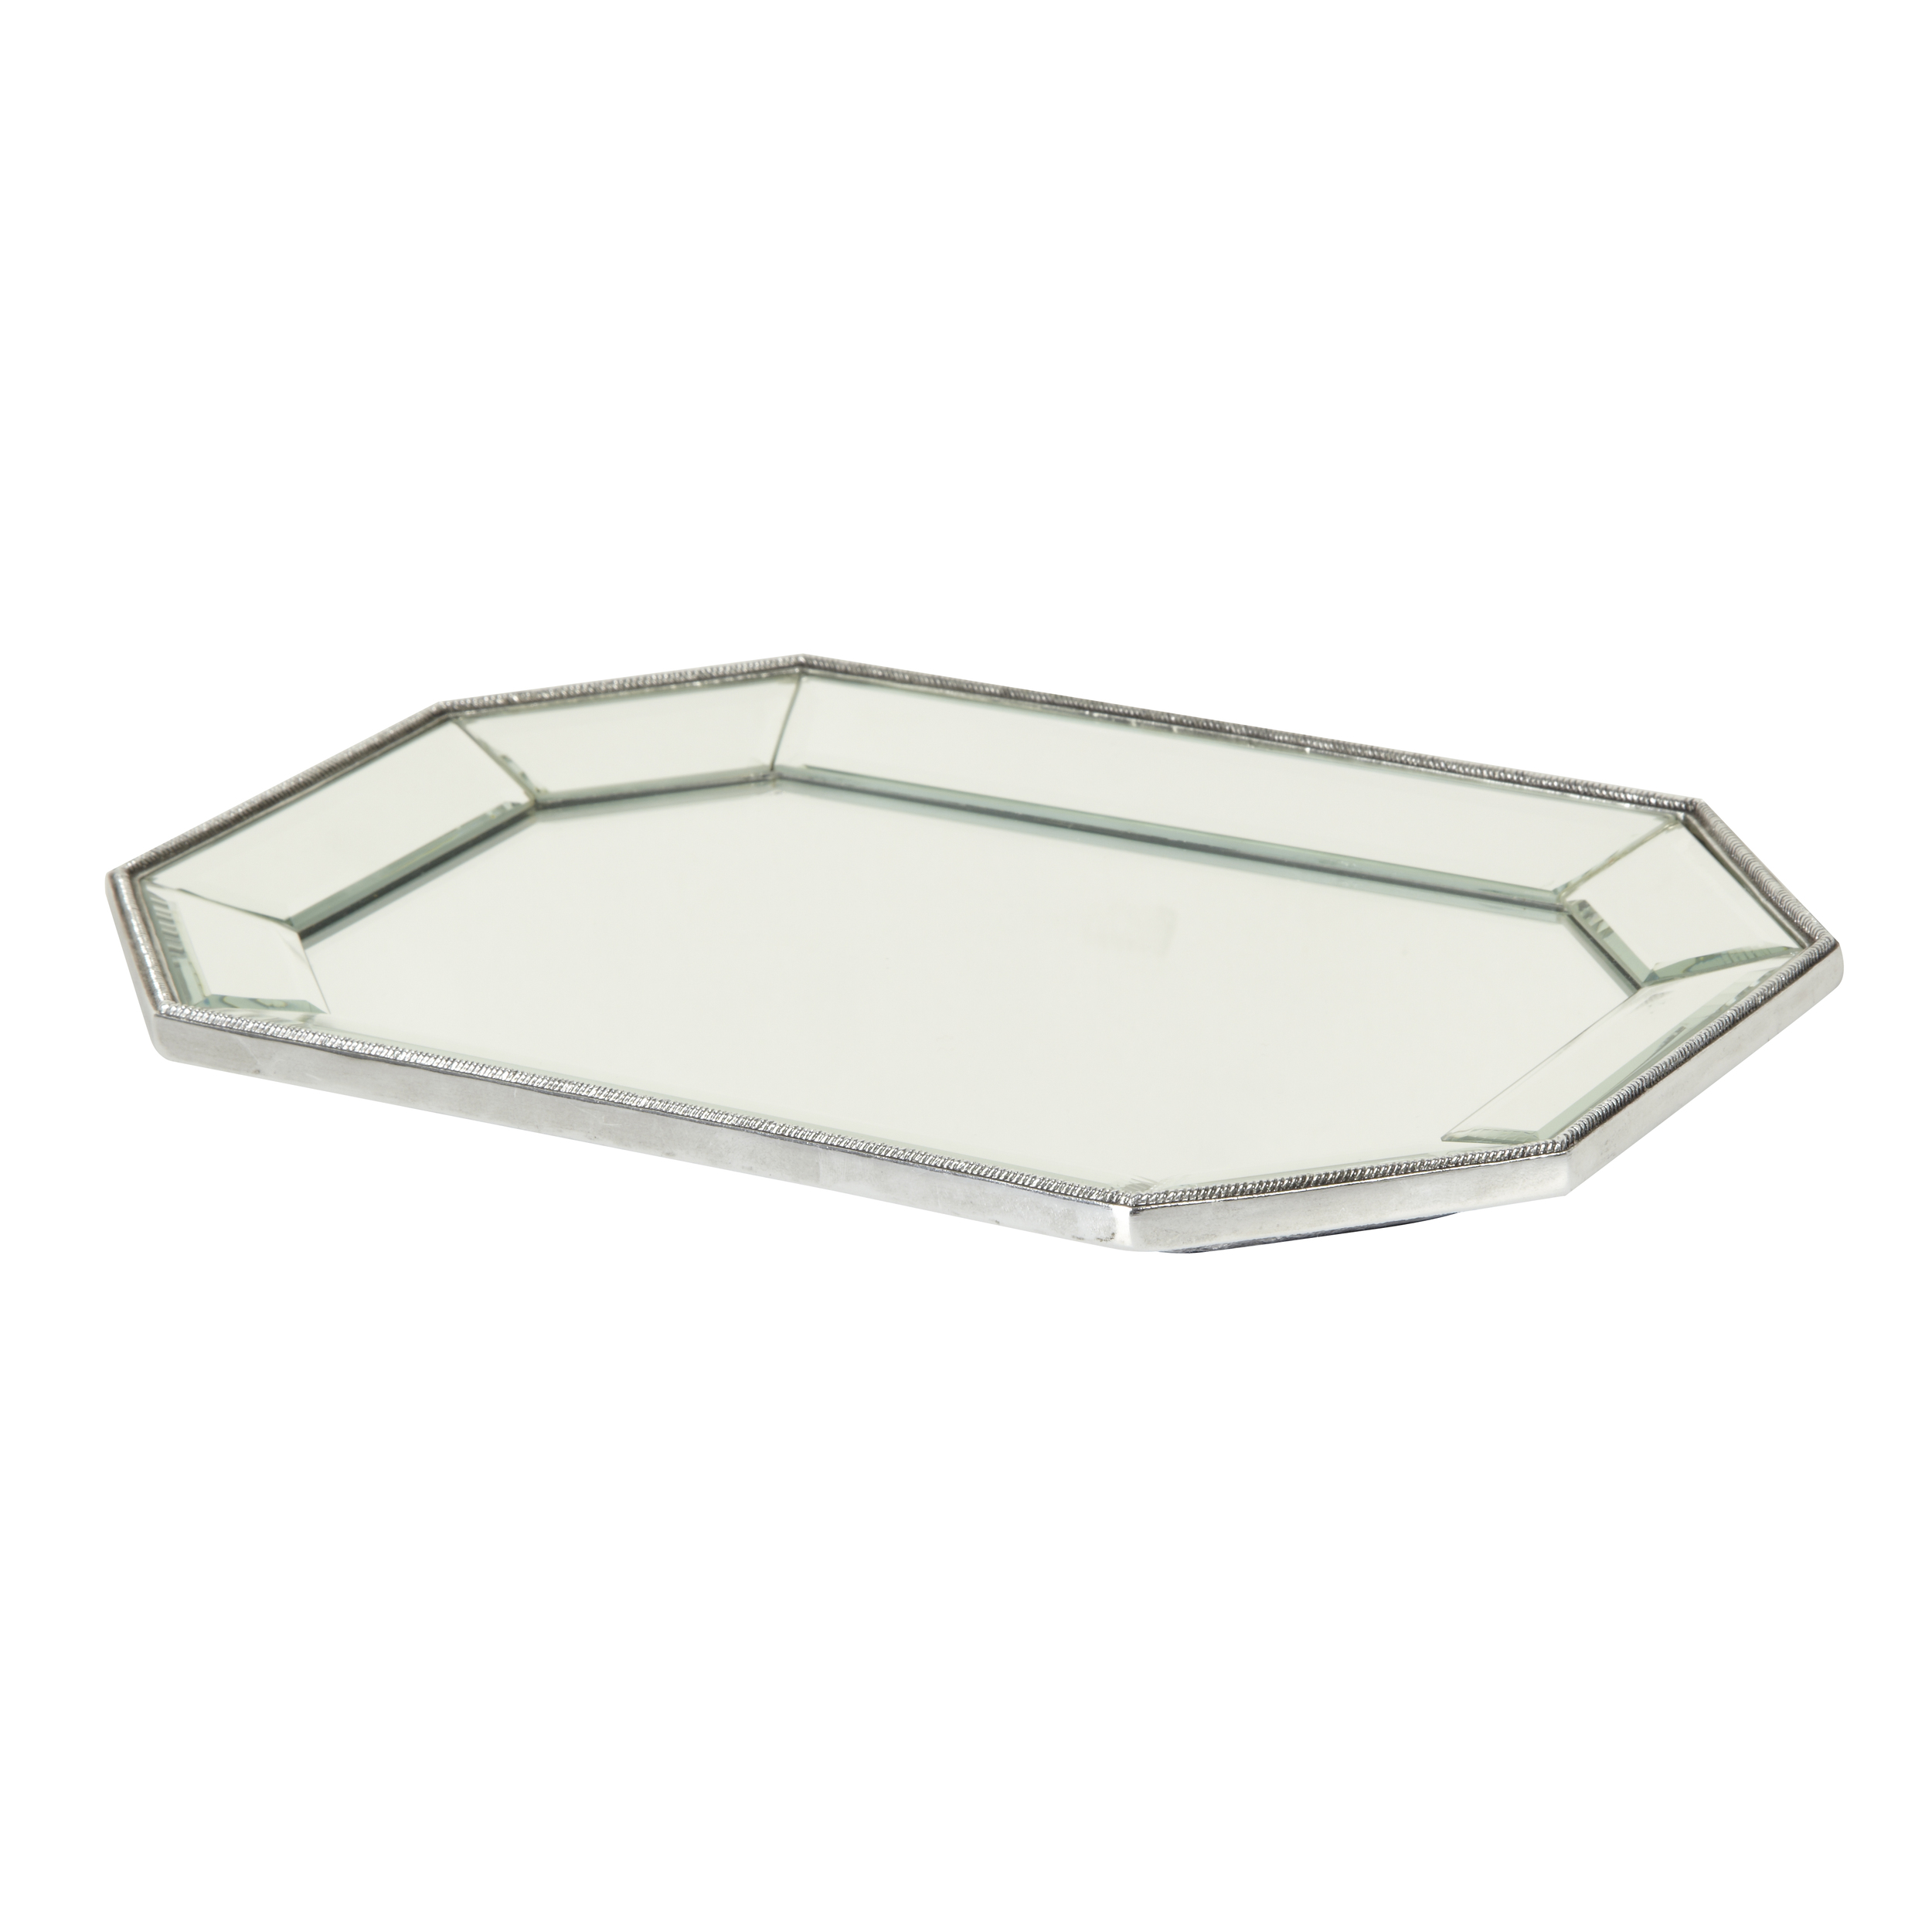 Astounding design mirror tray with modern design